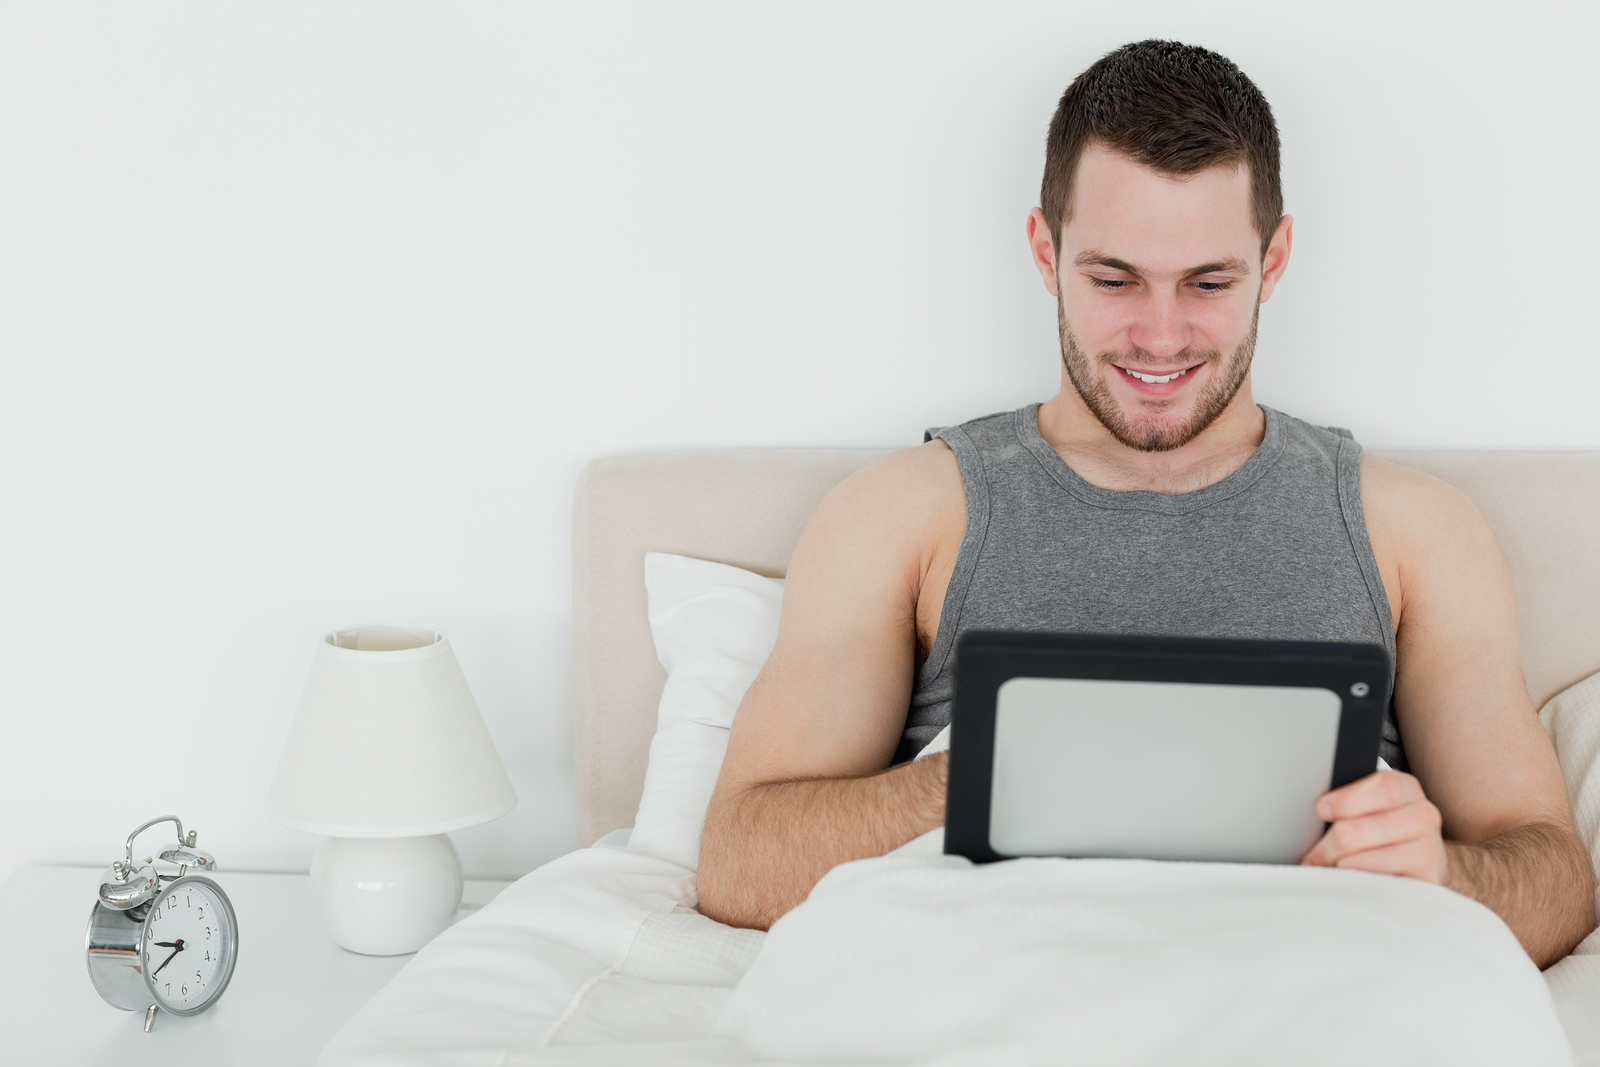 Could Electronic Use Contribute to Fertility Issues in Men?